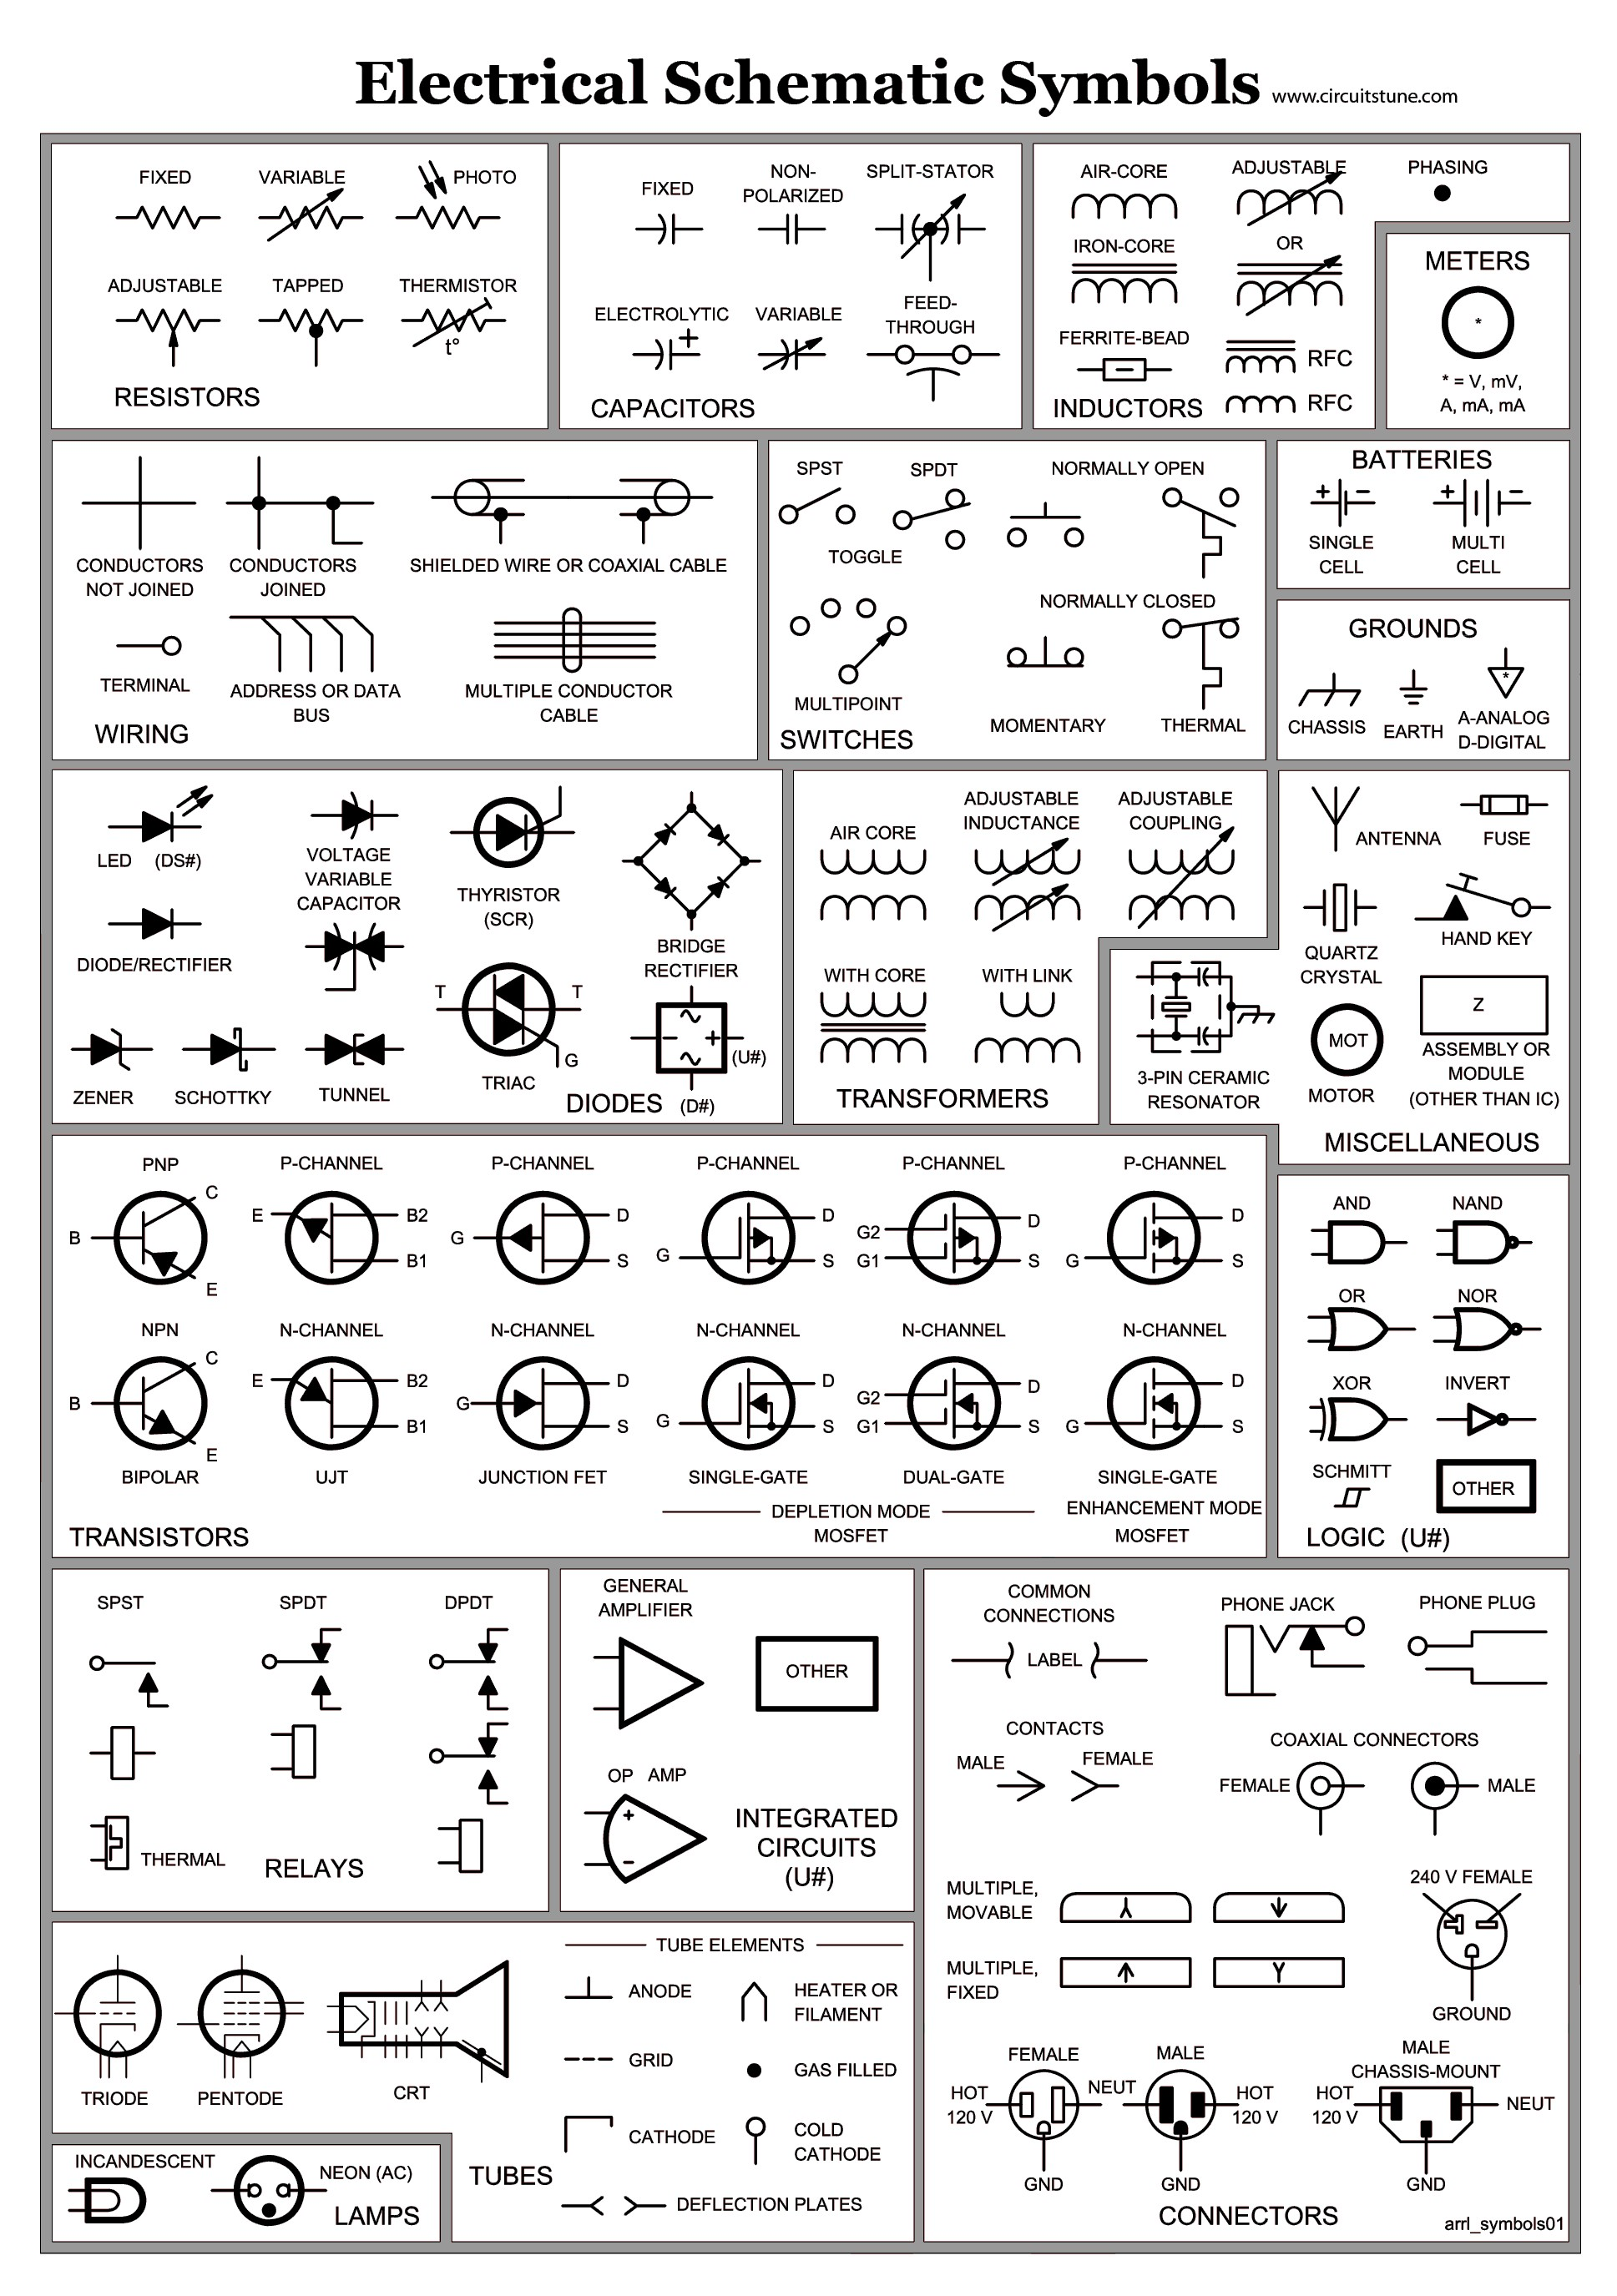 Electrical Engineering Block Diagram Electrical Schematic Symbols Skinsquiggles In 2018 Of Electrical Engineering Block Diagram